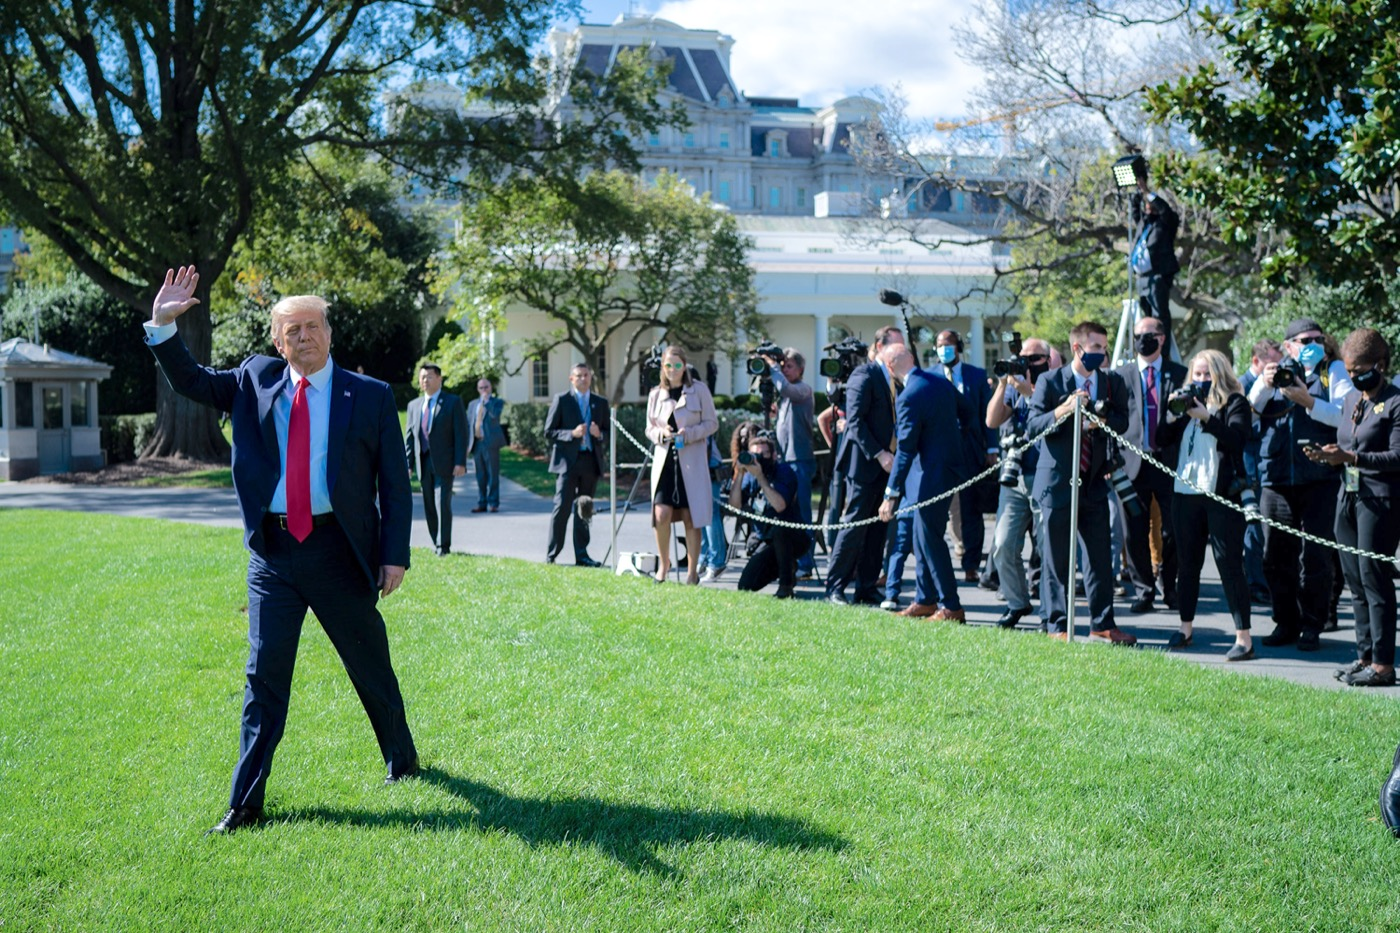 trump walking on a lawn, waving at people and press